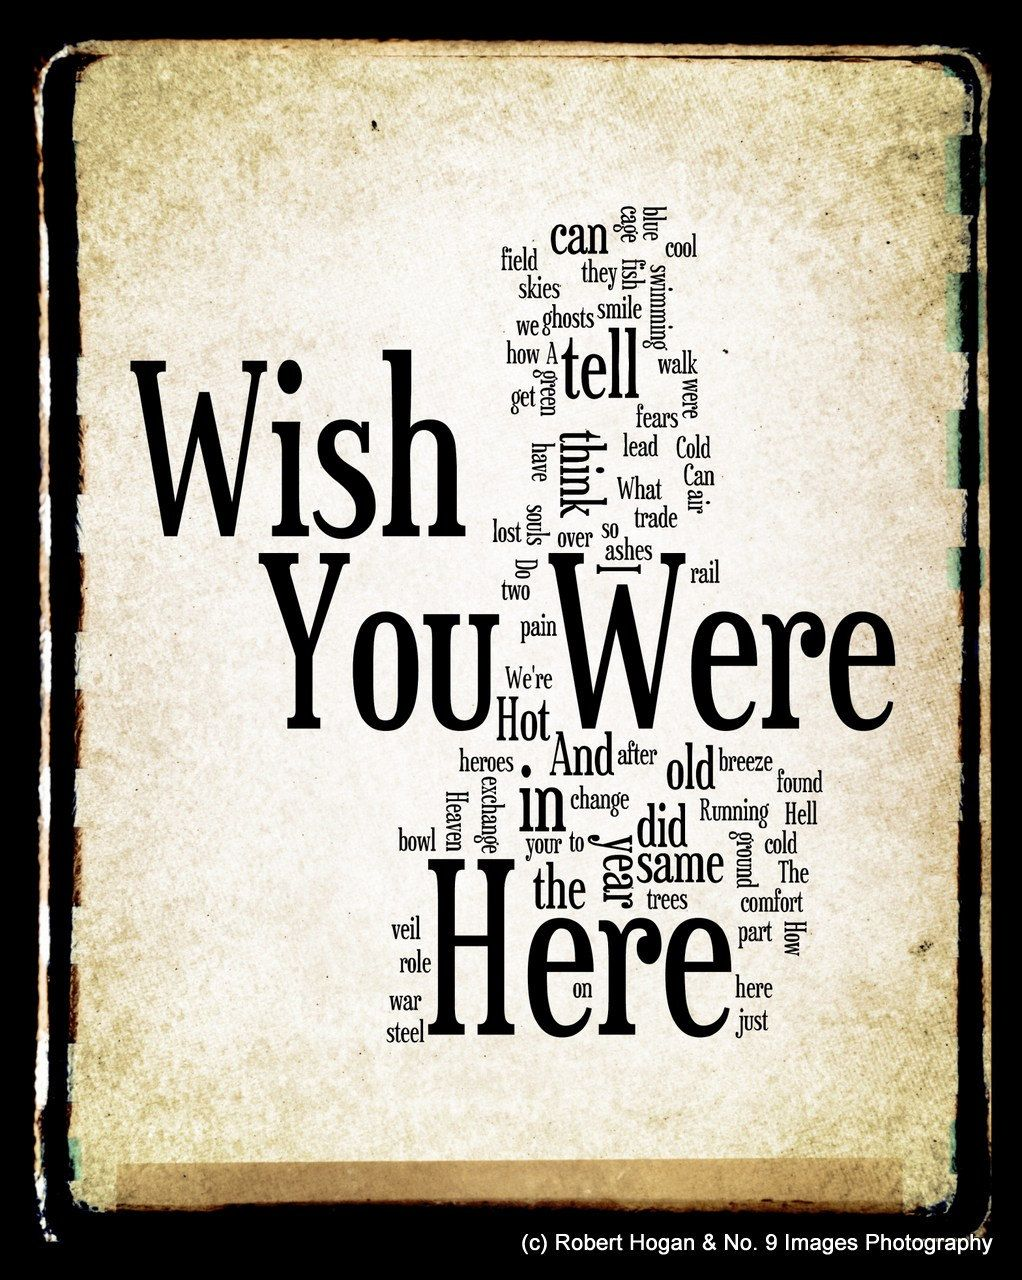 Wish You Were Here Quotes We're Just Two Lost Souls Swimming In A Fish Bowl Year After Year